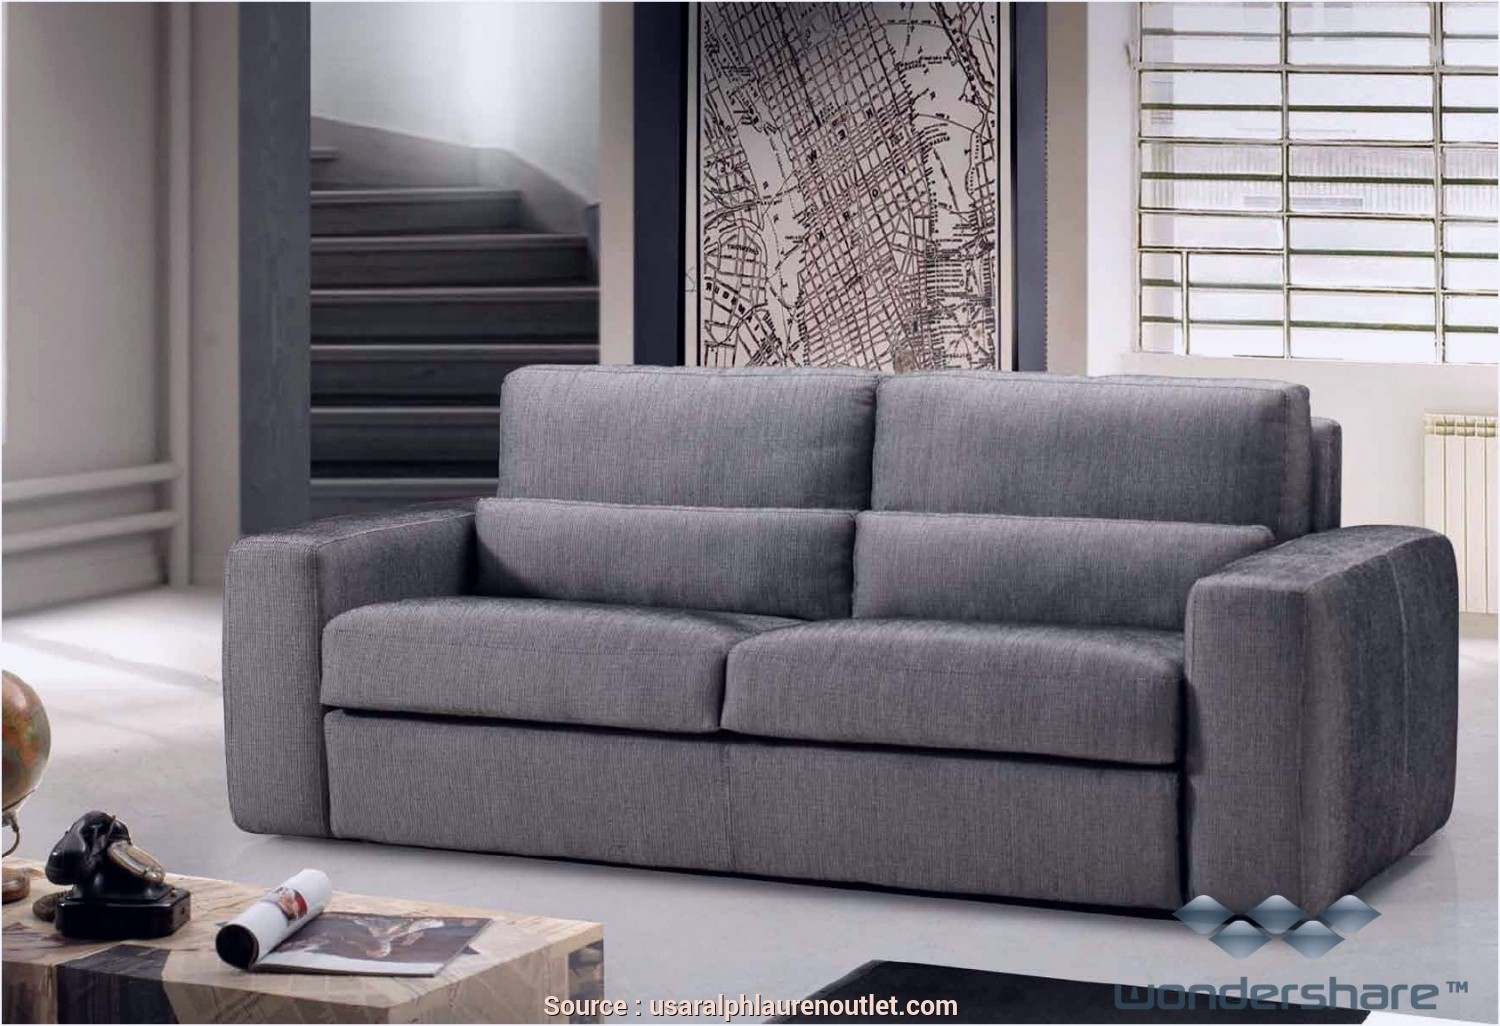 Divano Sofa In Offerta, Casuale 35 Fresco Poltrone Sofa ...